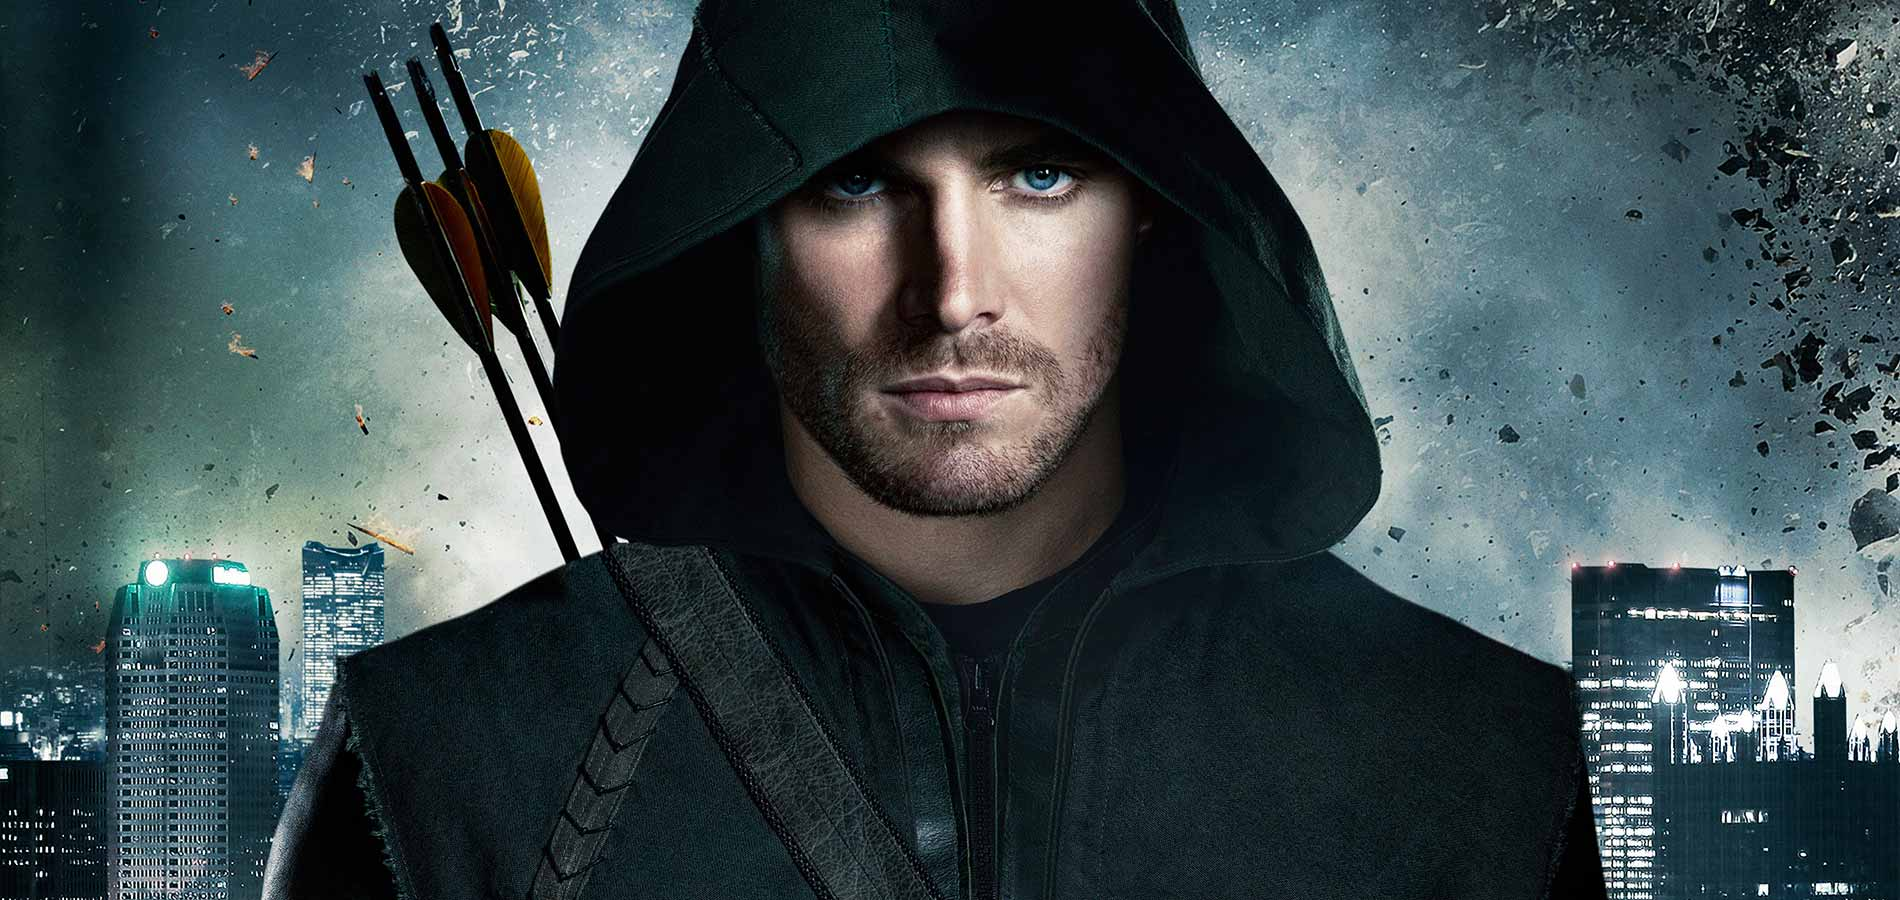 Green arrow images image black and white Green Arrow | DC image black and white